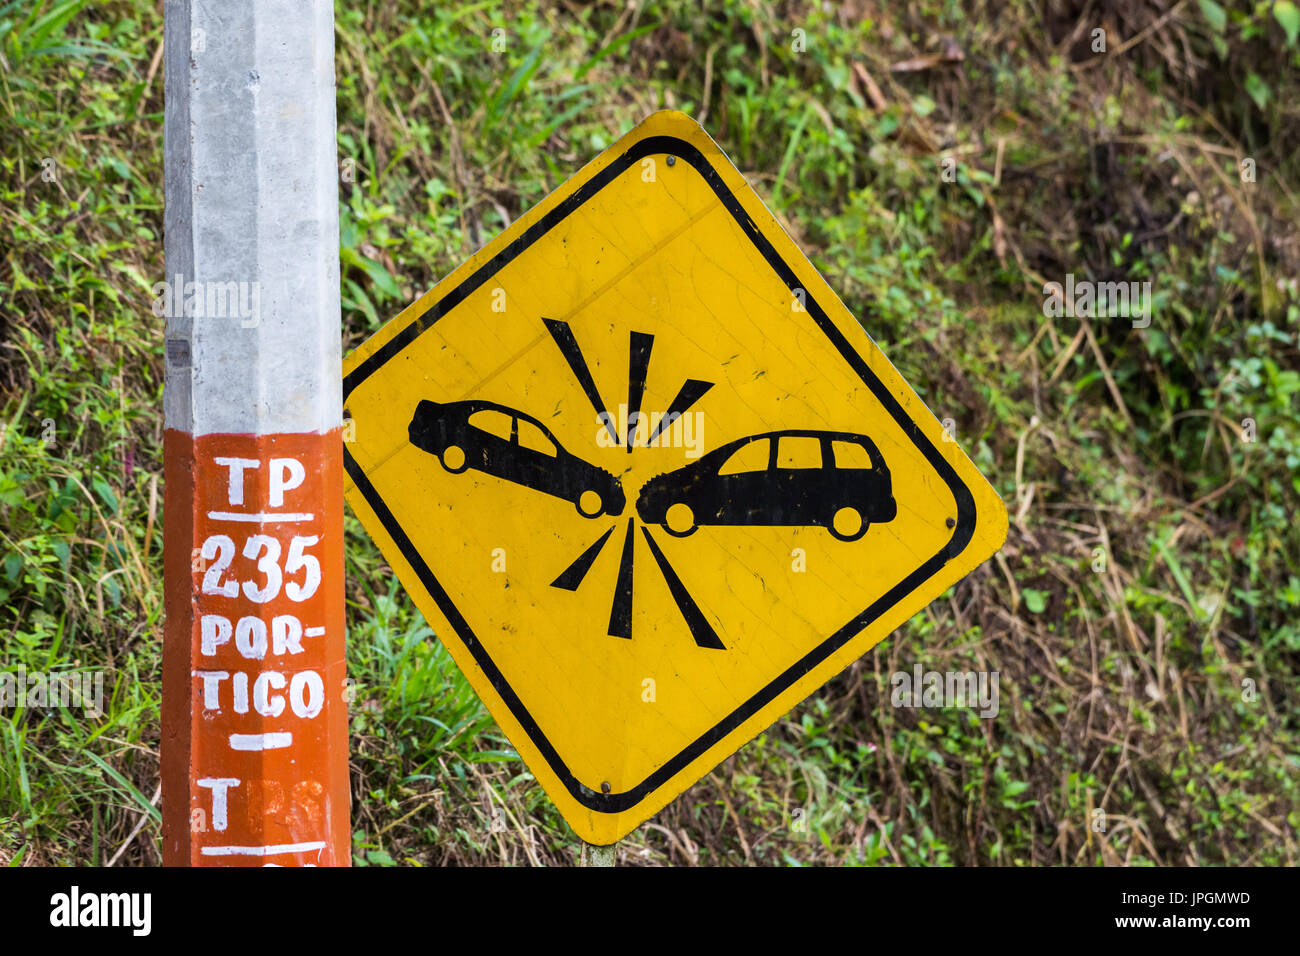 Road-sign warning driver of car collision. Colombia, South America. - Stock Image